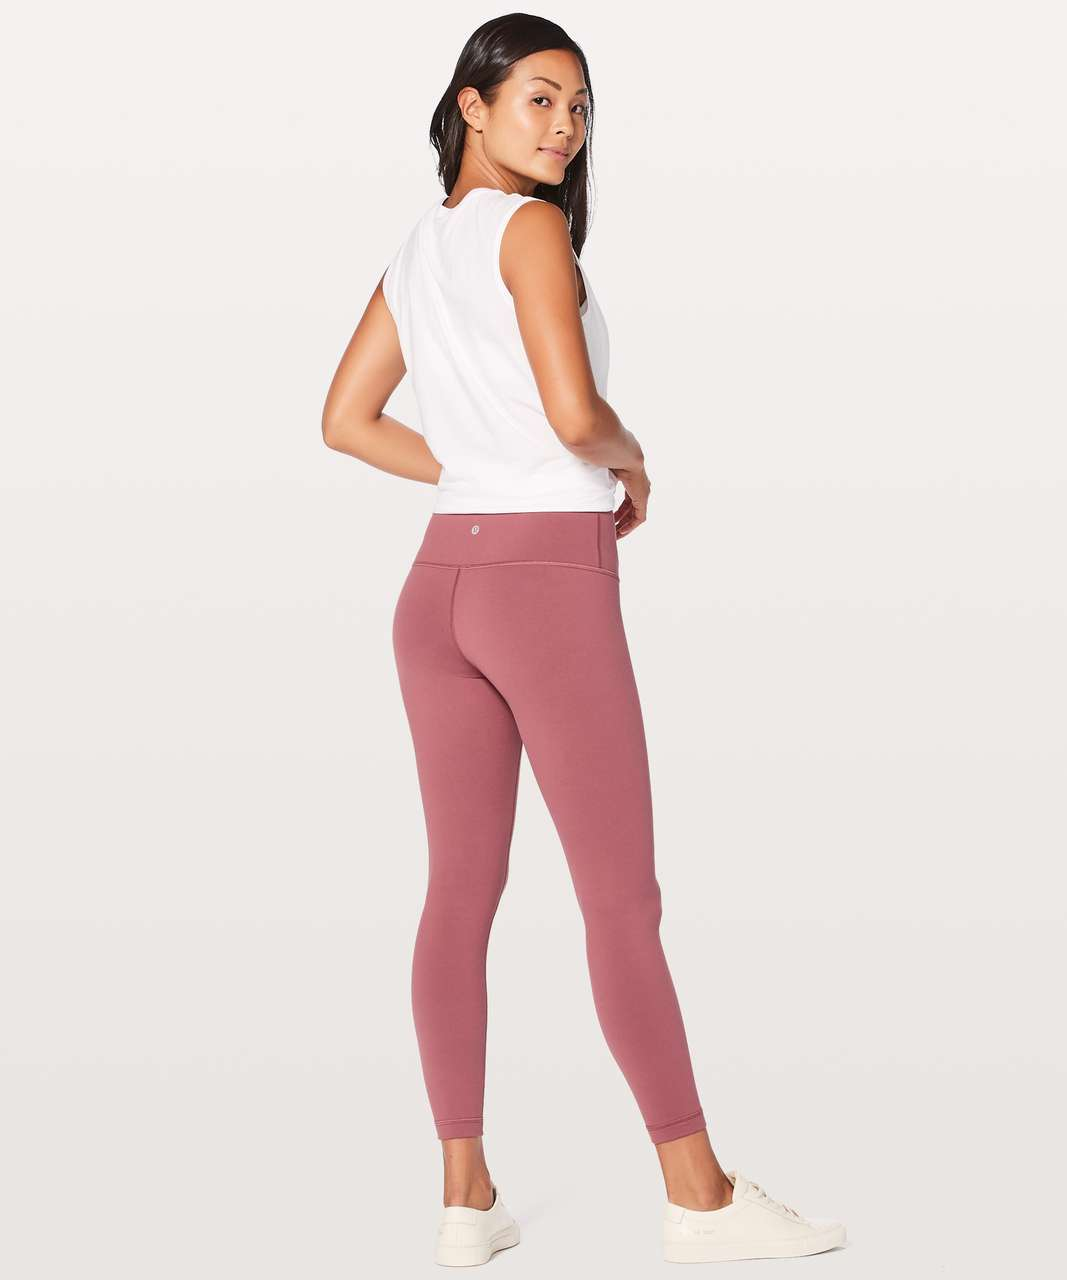 "Lululemon Wunder Under Hi-Rise 7/8 Tight *Full-On Luon 25"" - So Merlot"